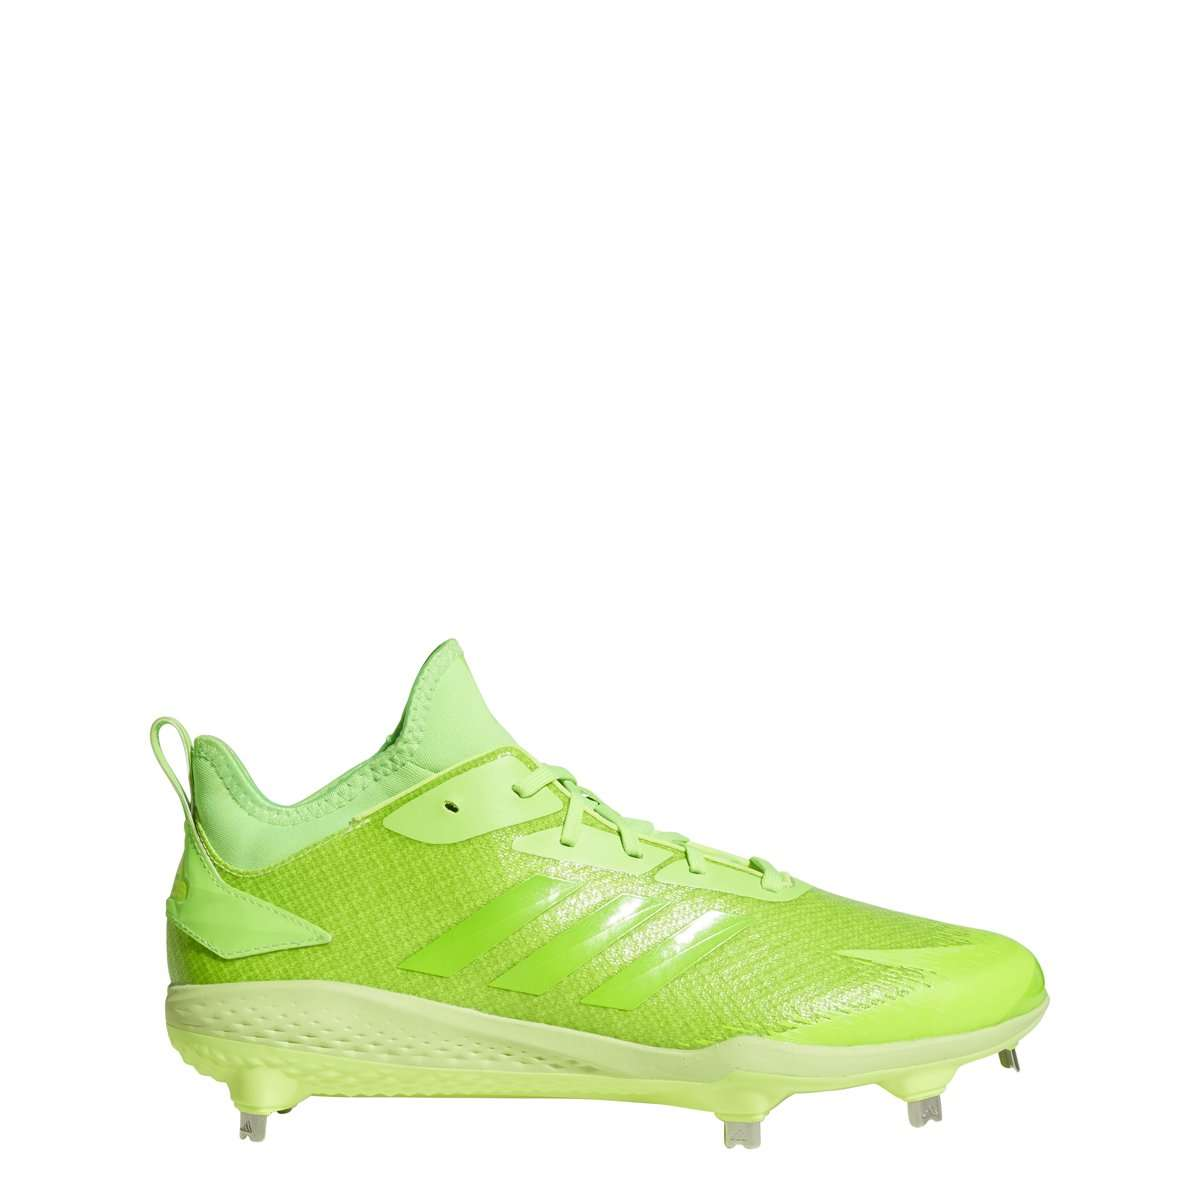 ... Adidas Adizero Afterburner V Dipped Cleats - League Outfitters ... 7f323effa